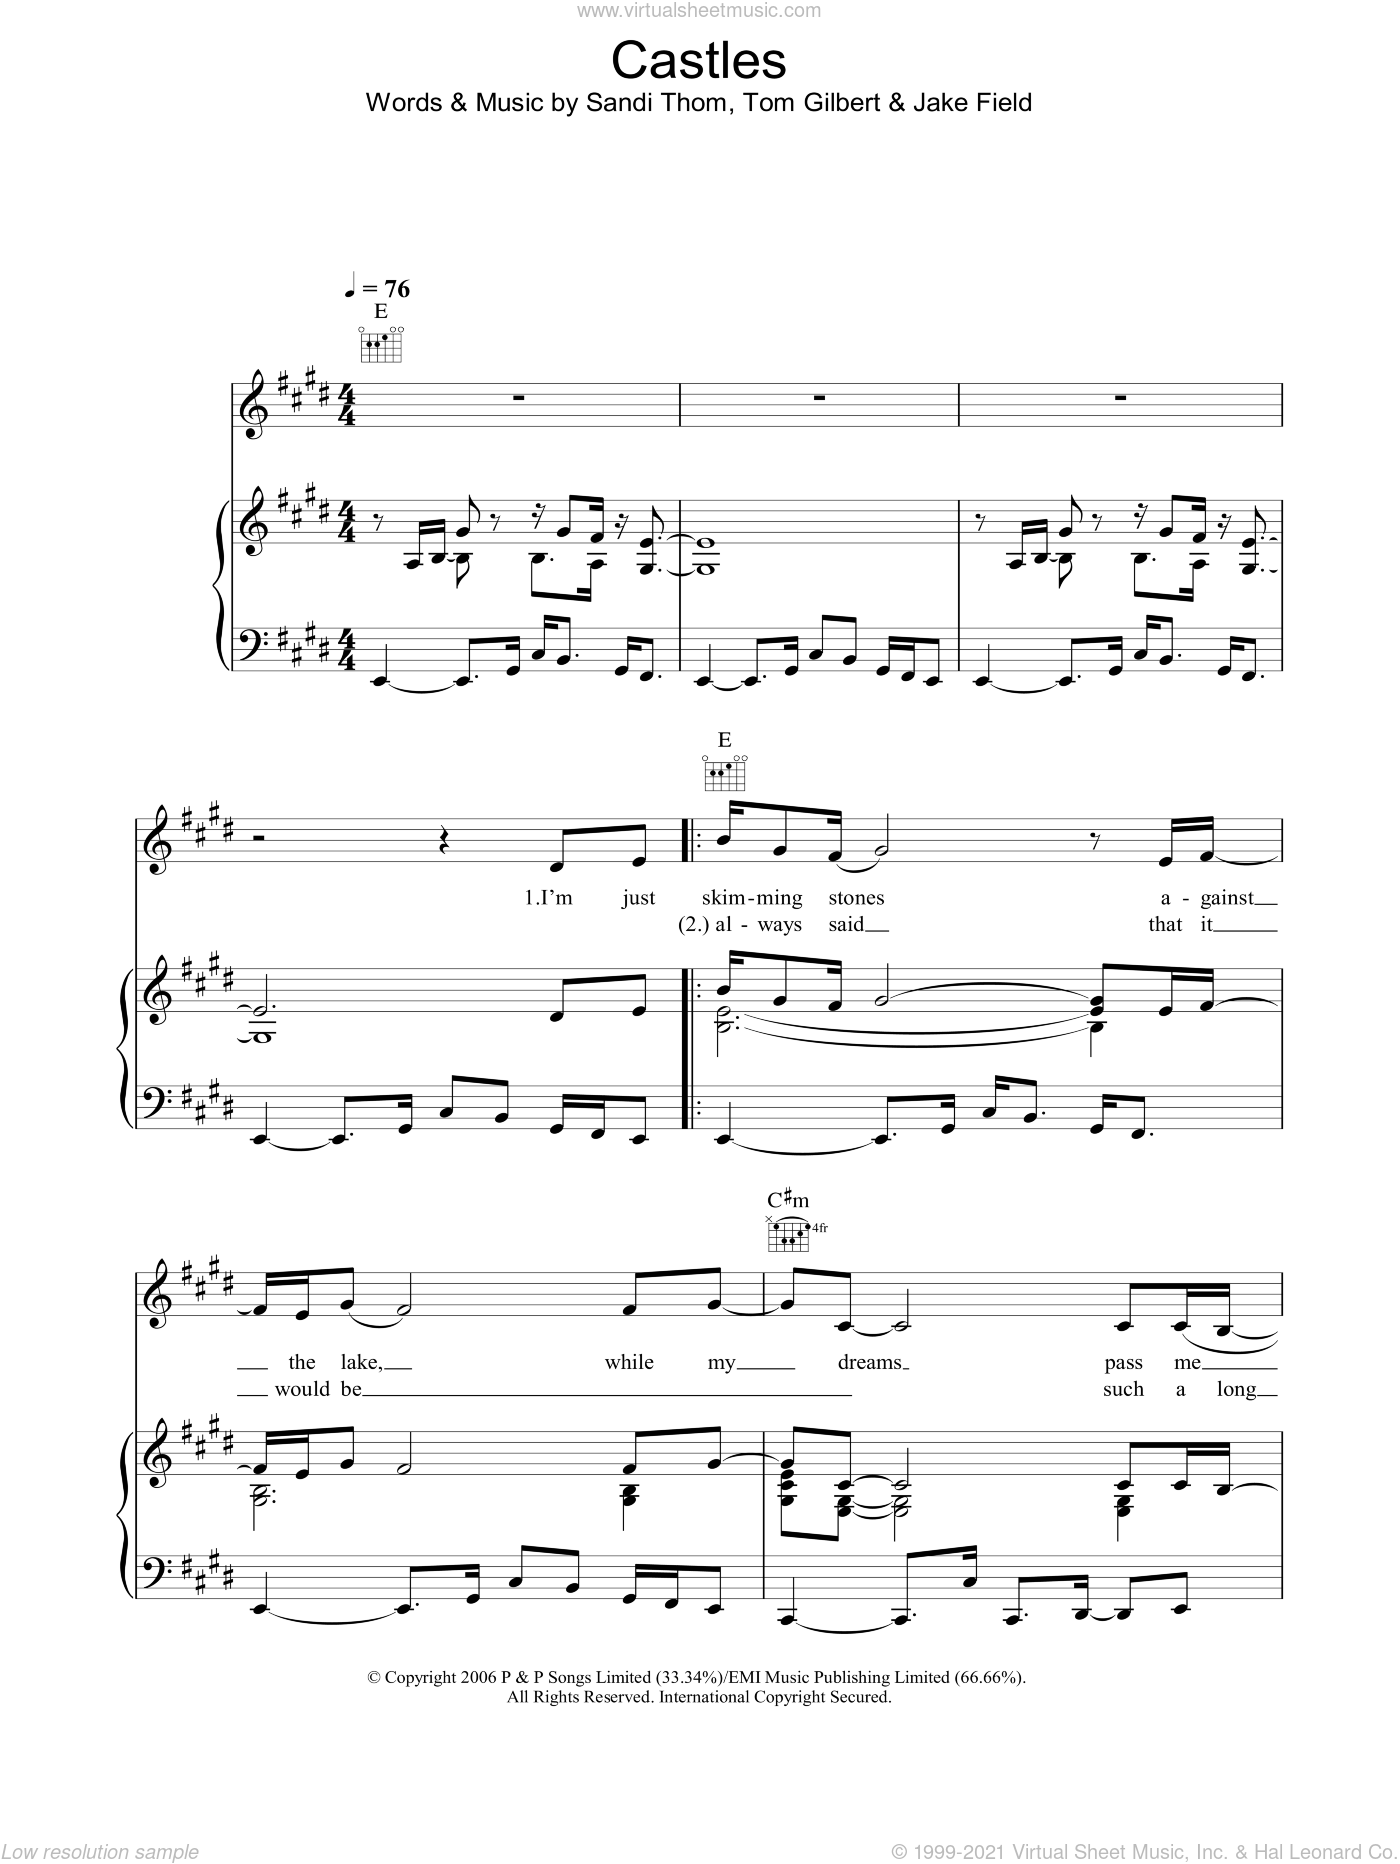 Castles sheet music for voice, piano or guitar by Tom Gilbert and Jake Field. Score Image Preview.